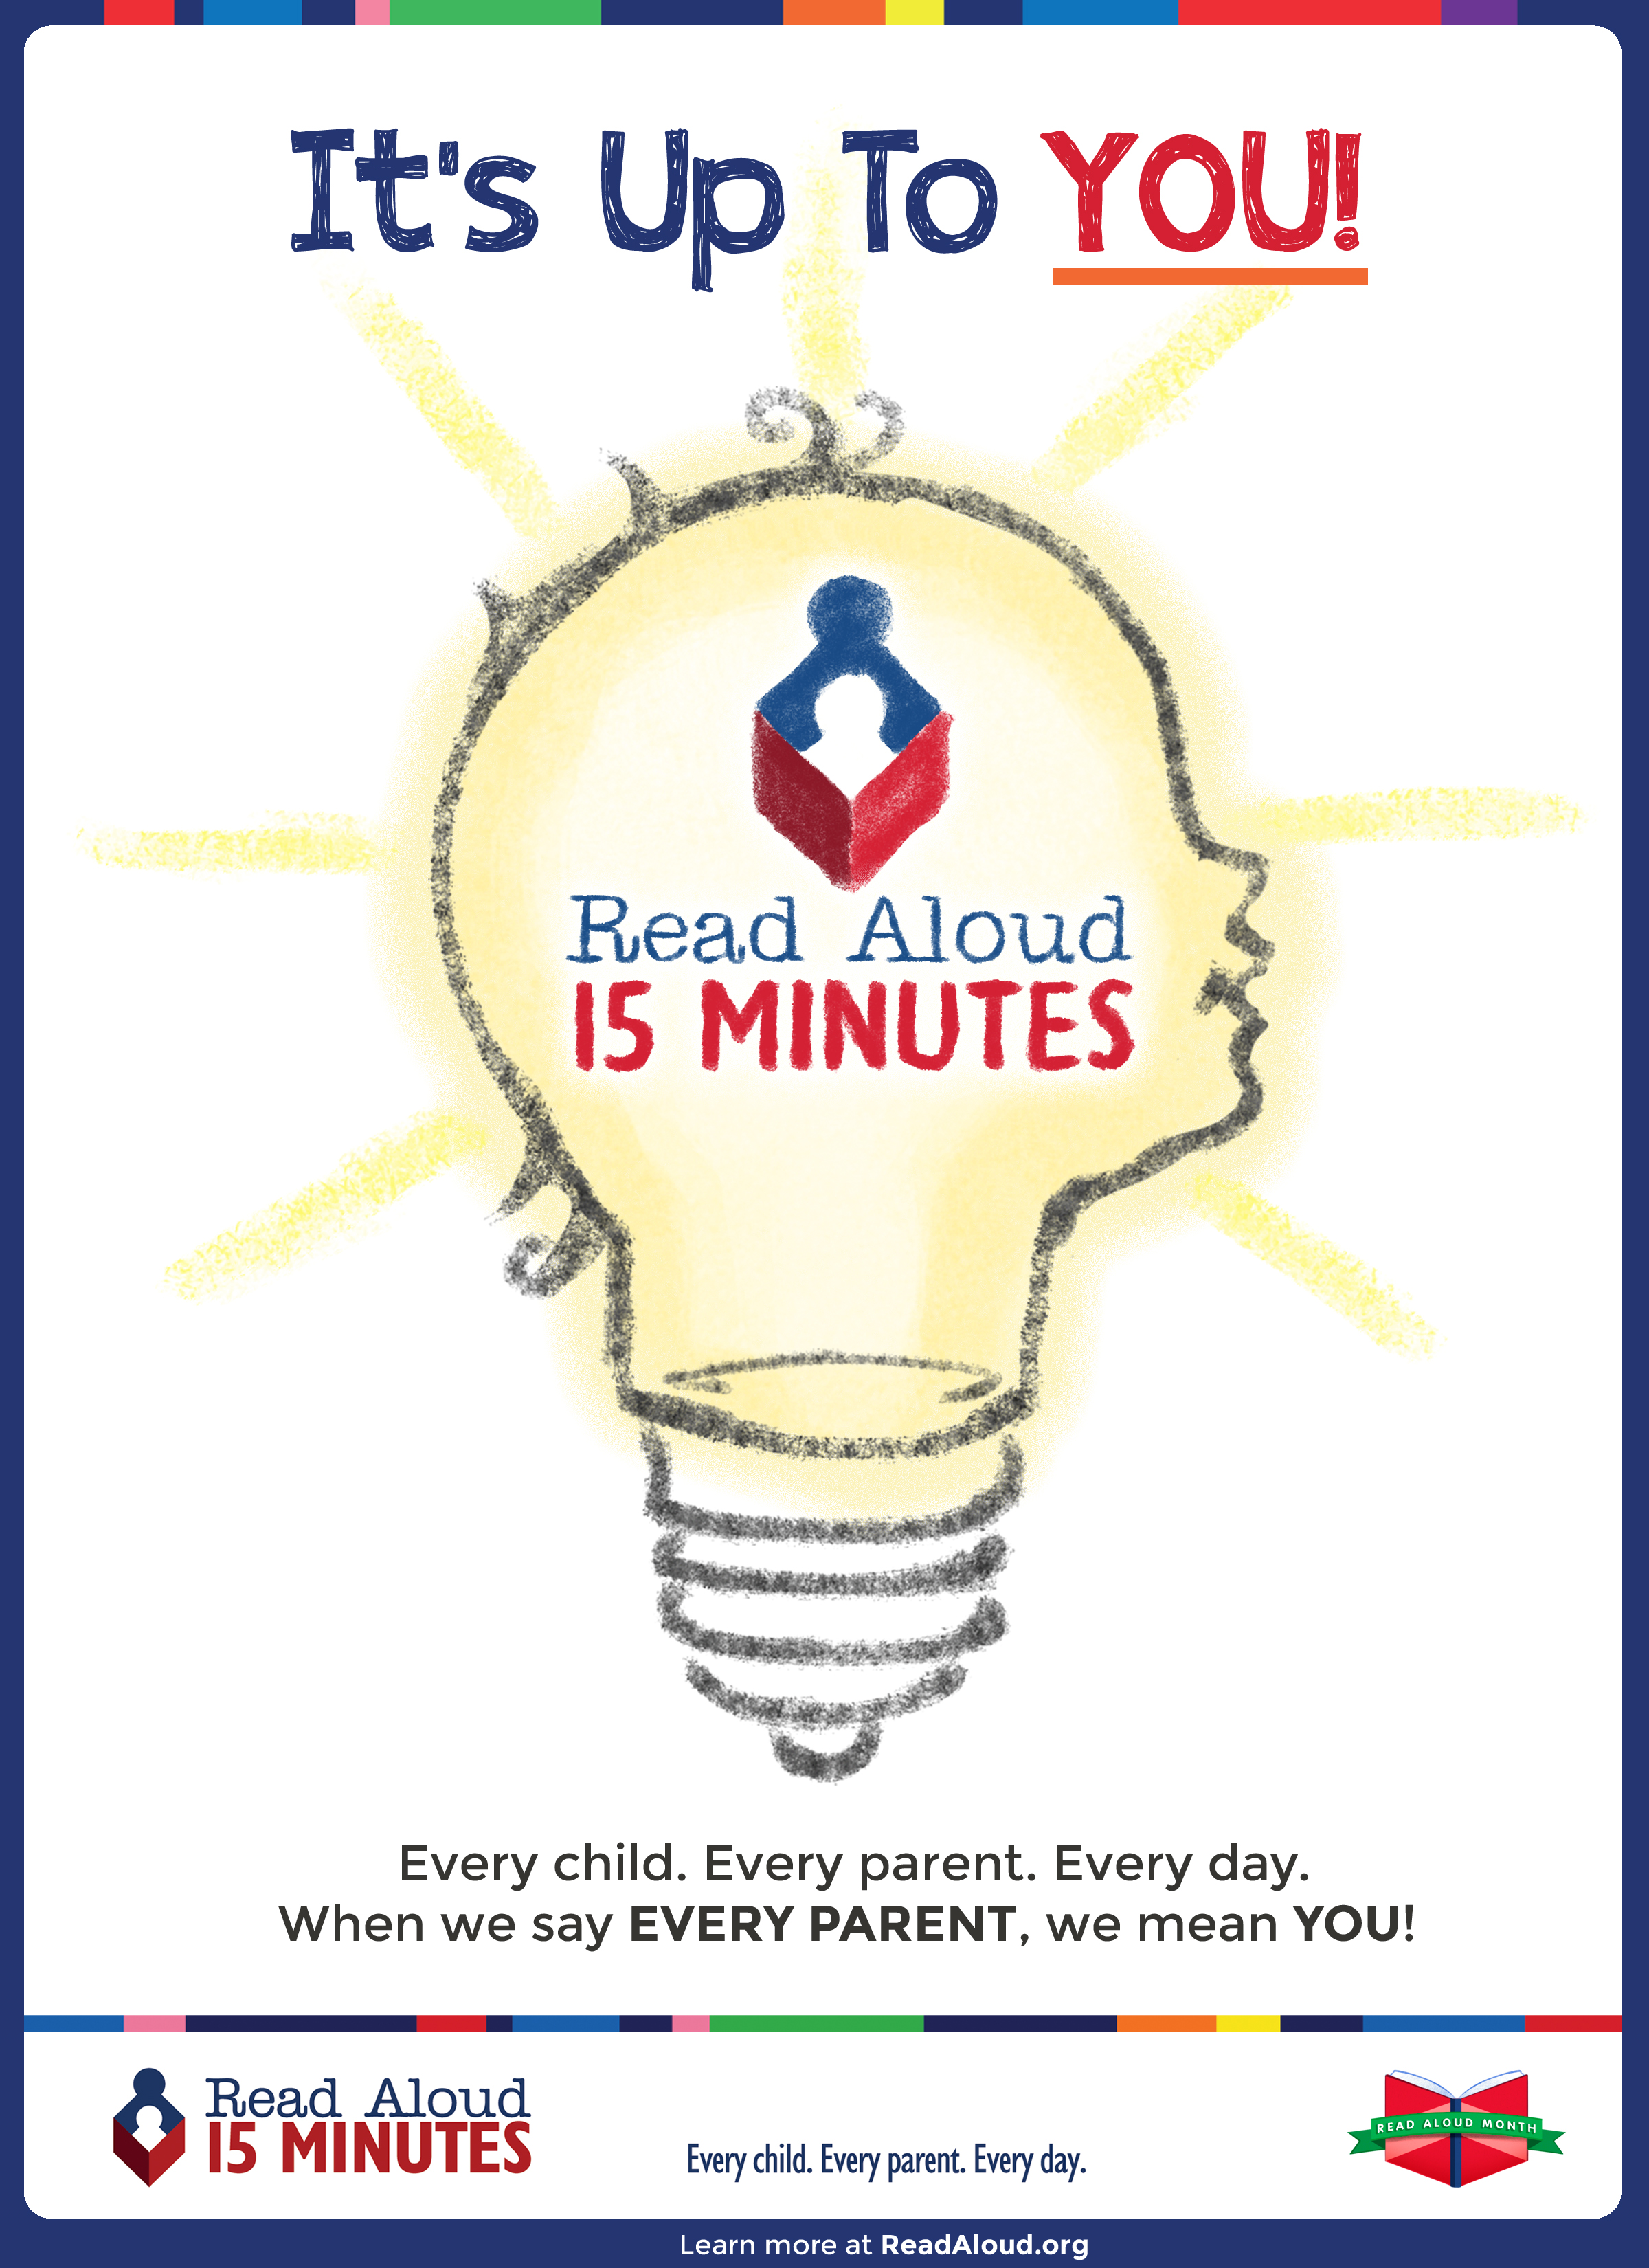 READ... Every Child, Every Parent, Every Day